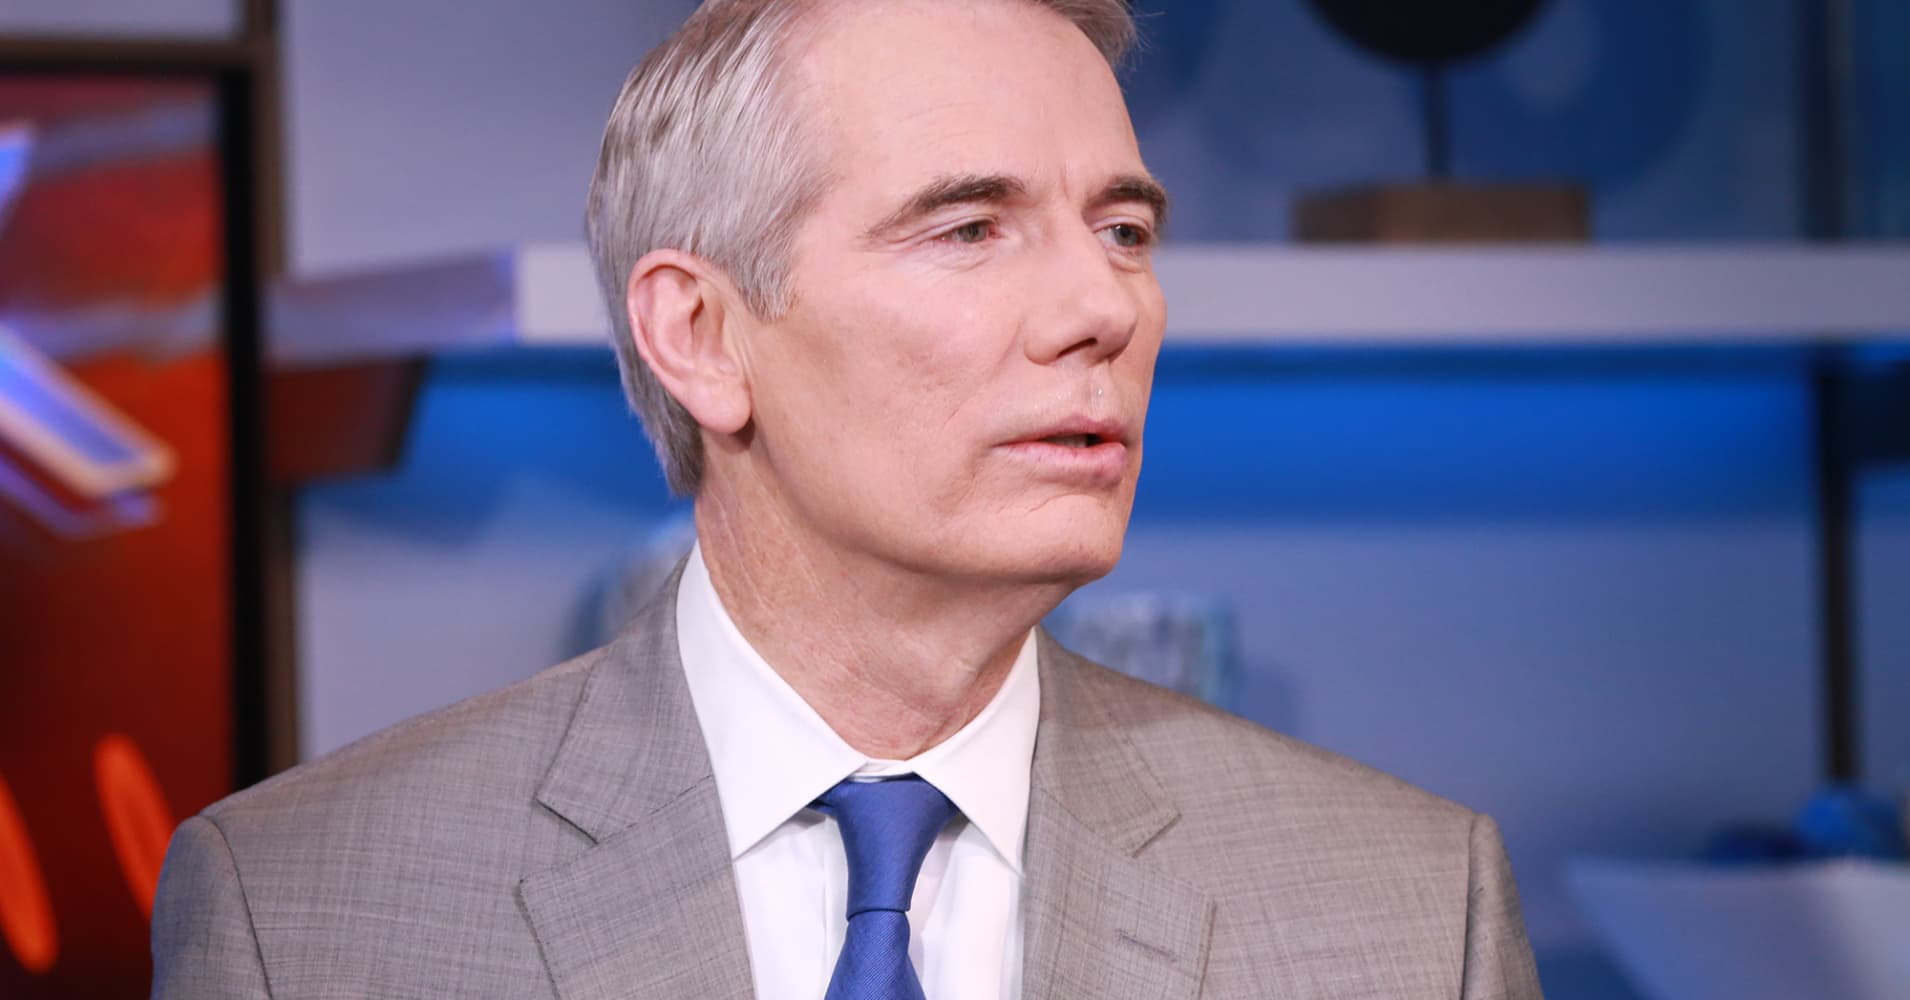 GOP Sen. Portman to Democrats: Shutting down the government doesn't end well